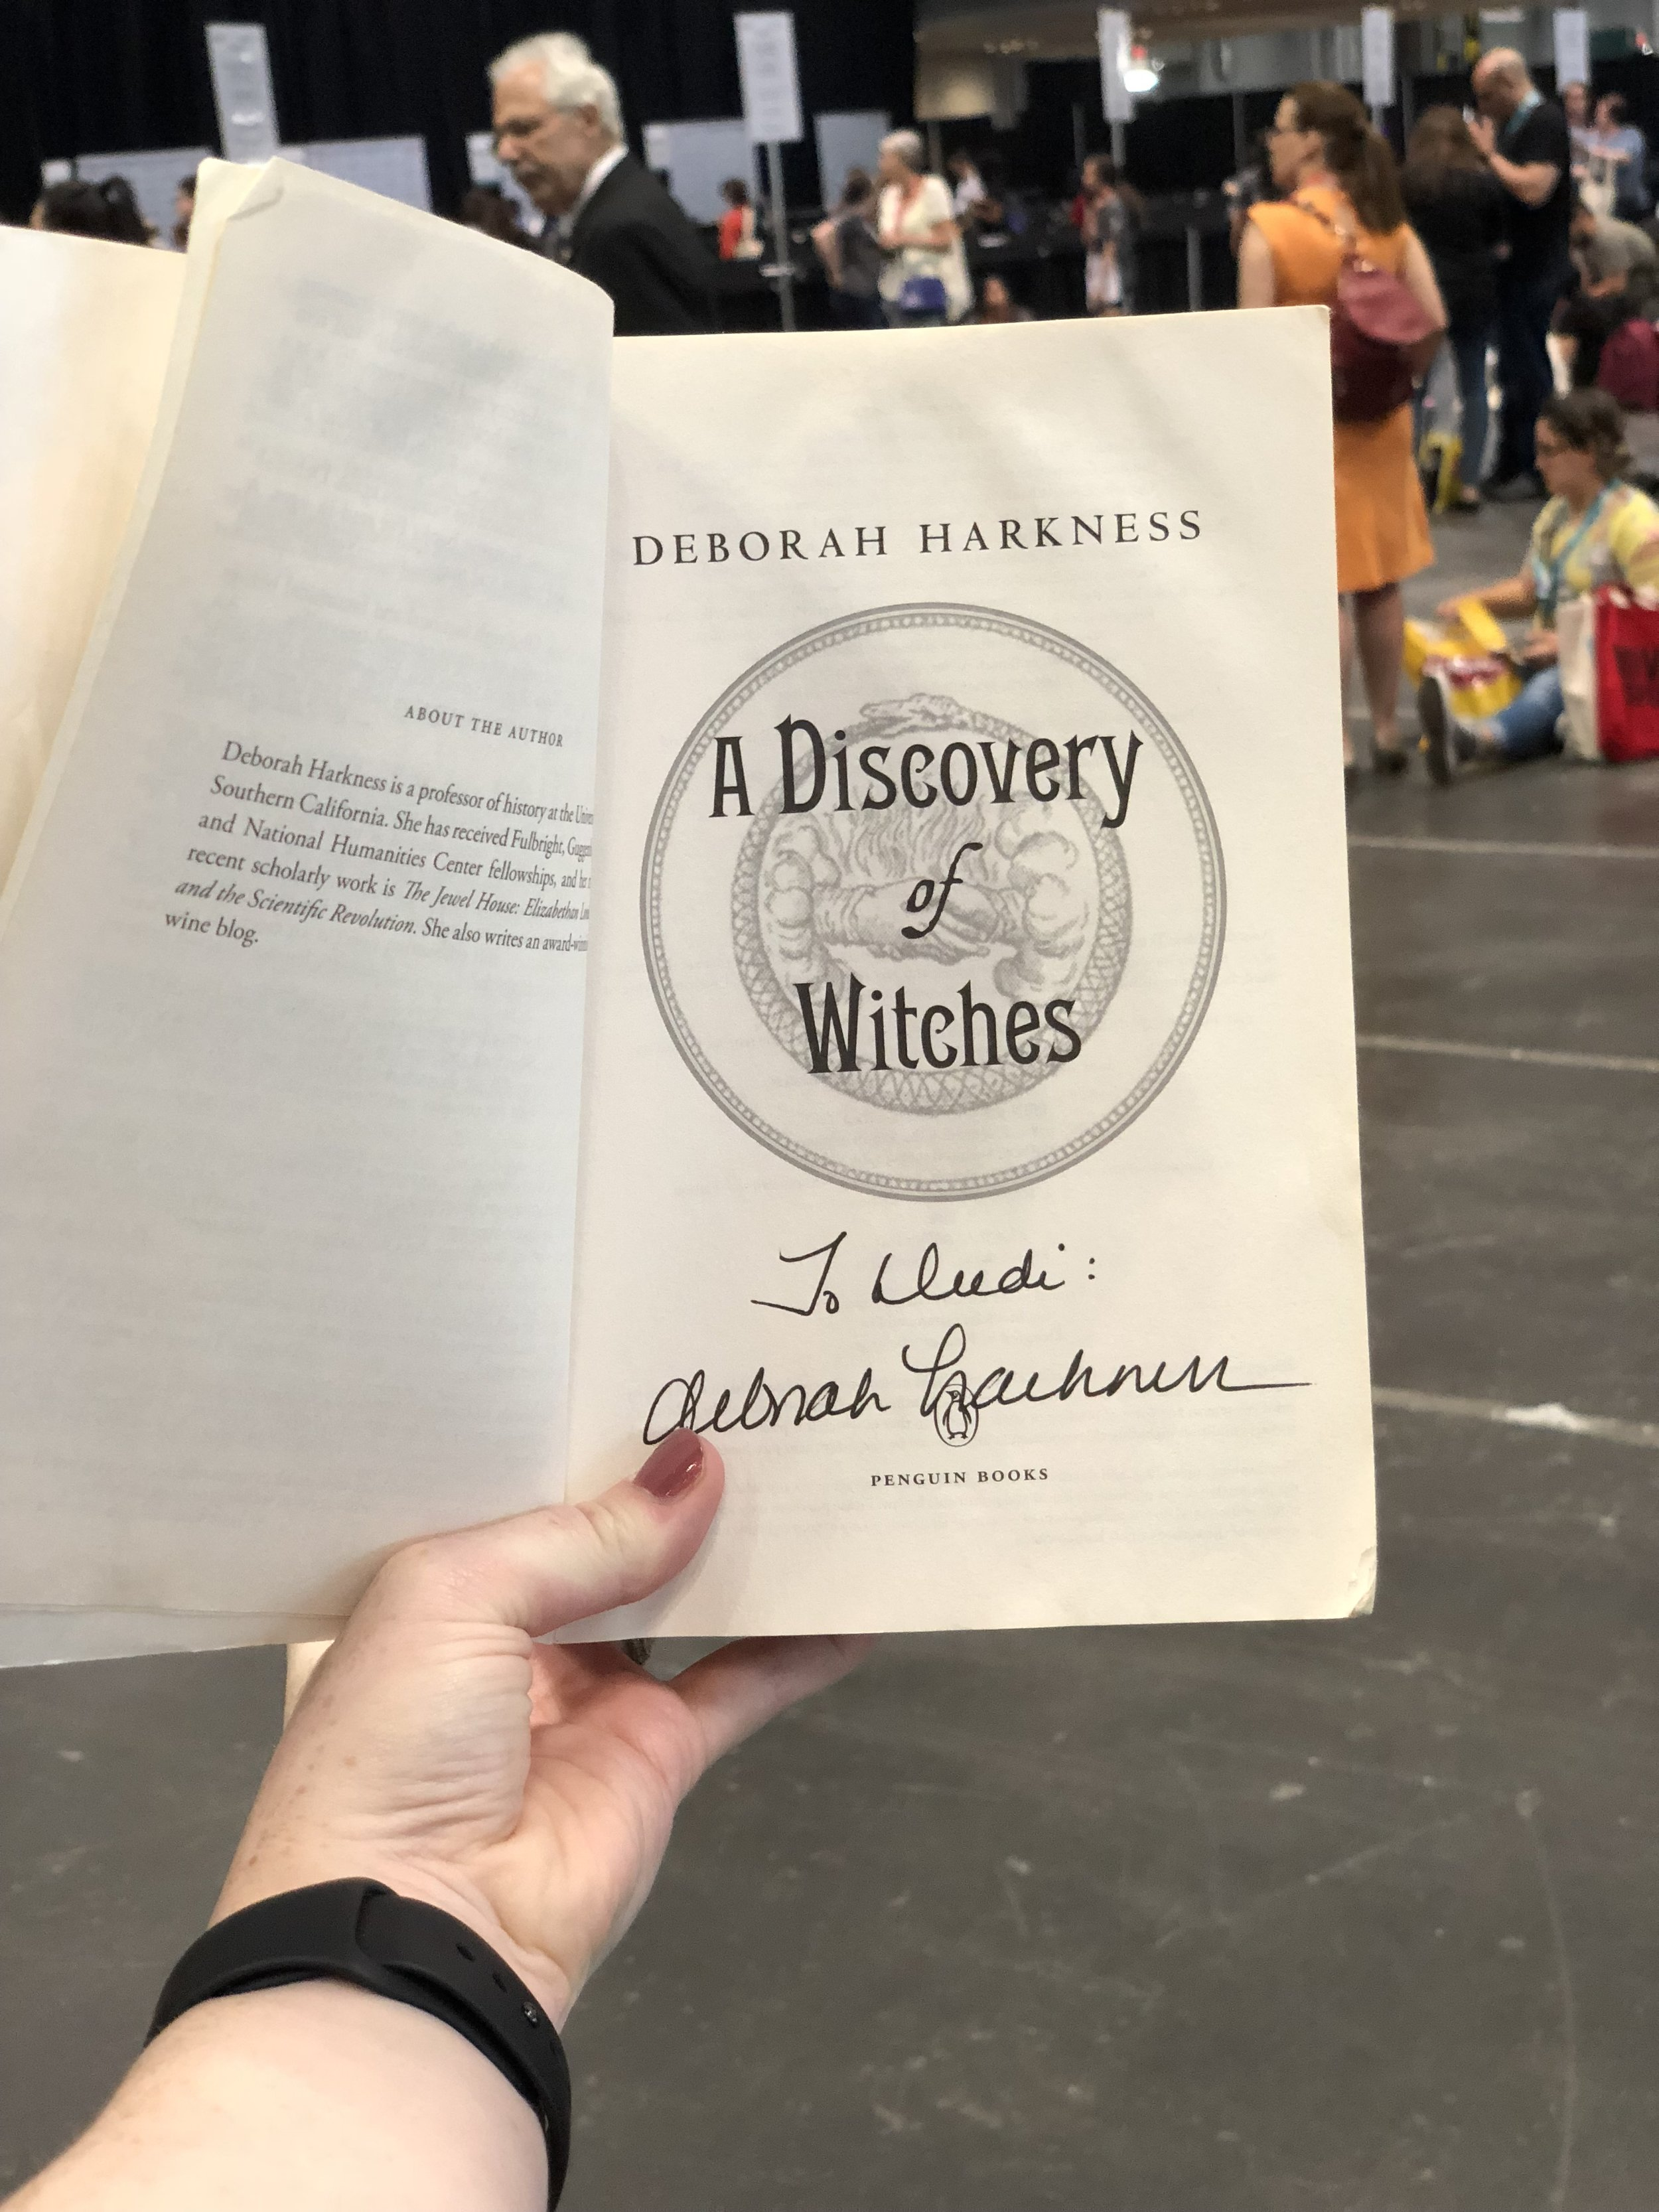 bookcon-2018-a-discovery-of-witches-signed.jpg